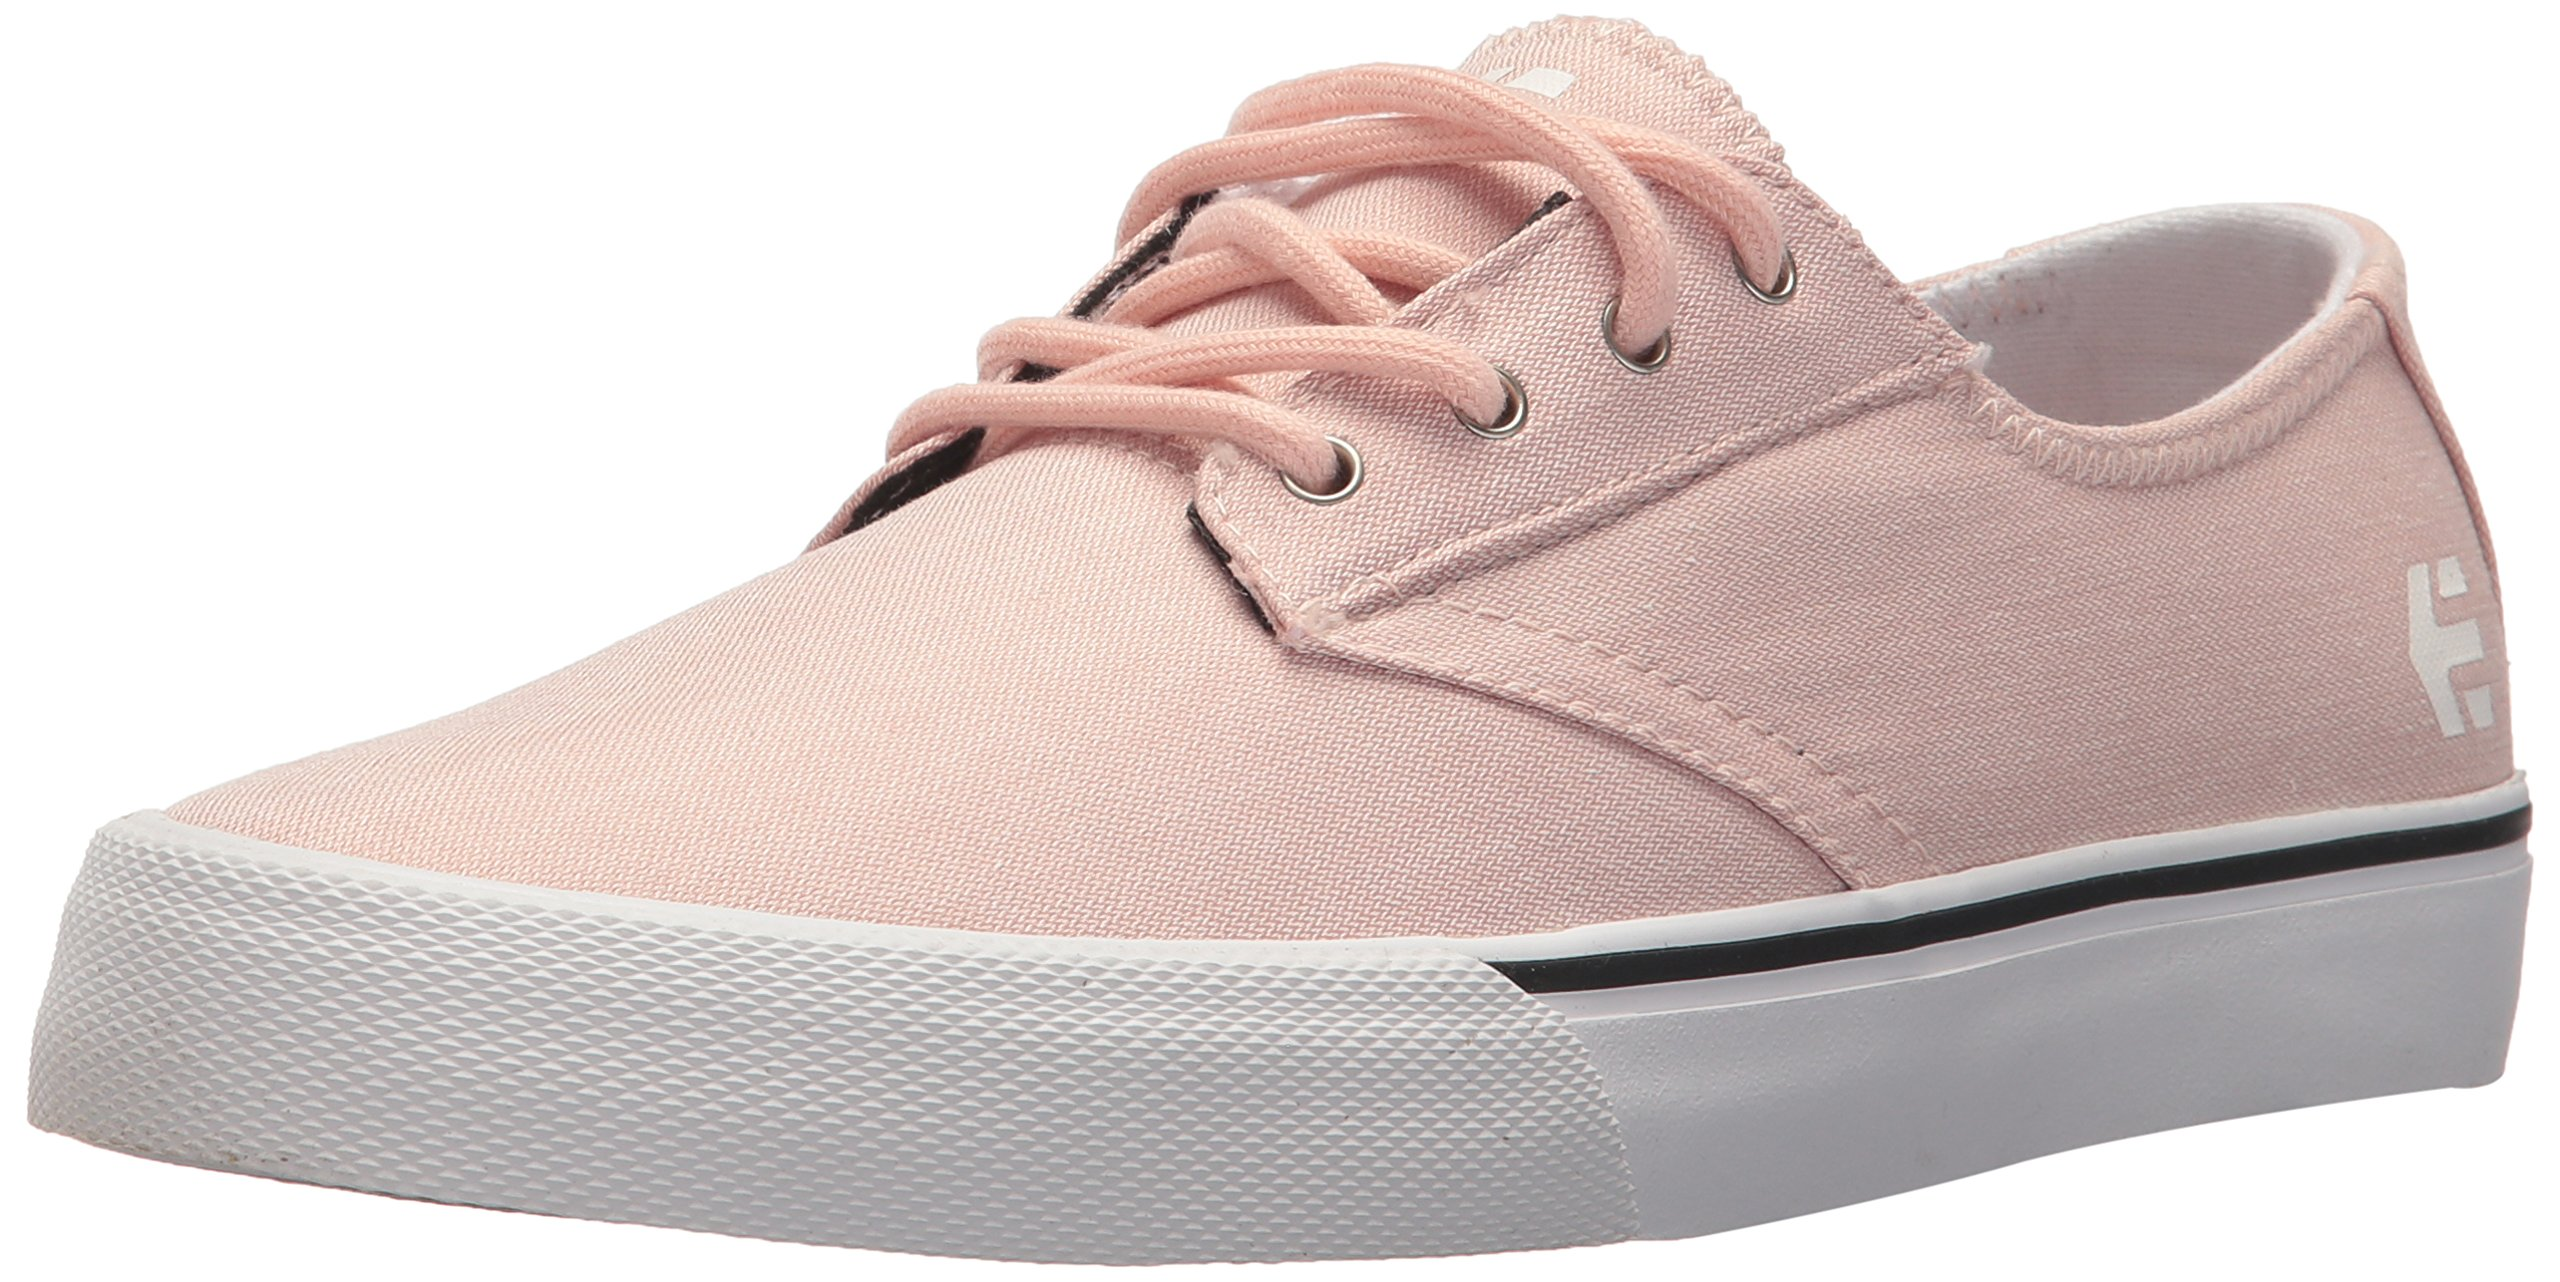 Etnies Women's Jameson Vulc LS W's Skate Shoe, Pink, 6.5 Medium US